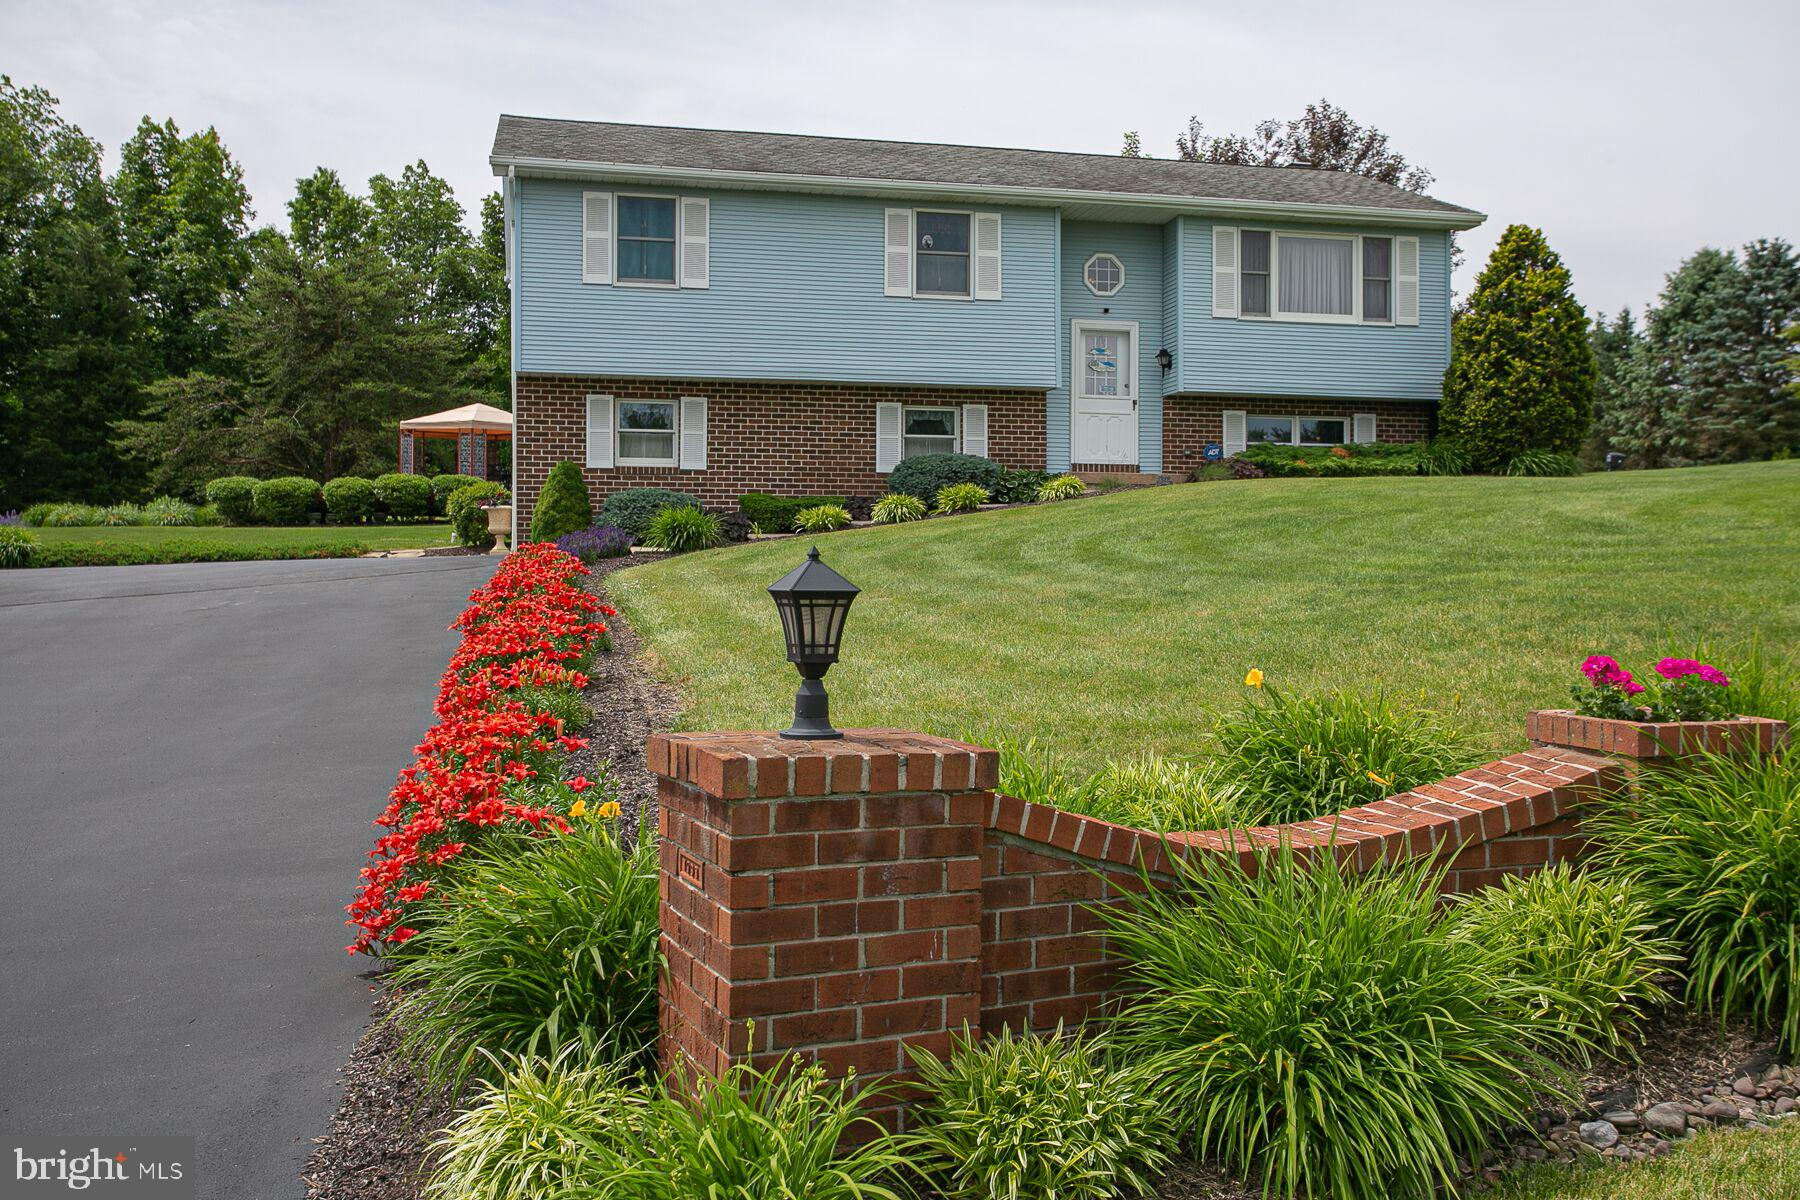 762 SLEEPY HOLLOW DRIVE, MOHRSVILLE, PA 19541